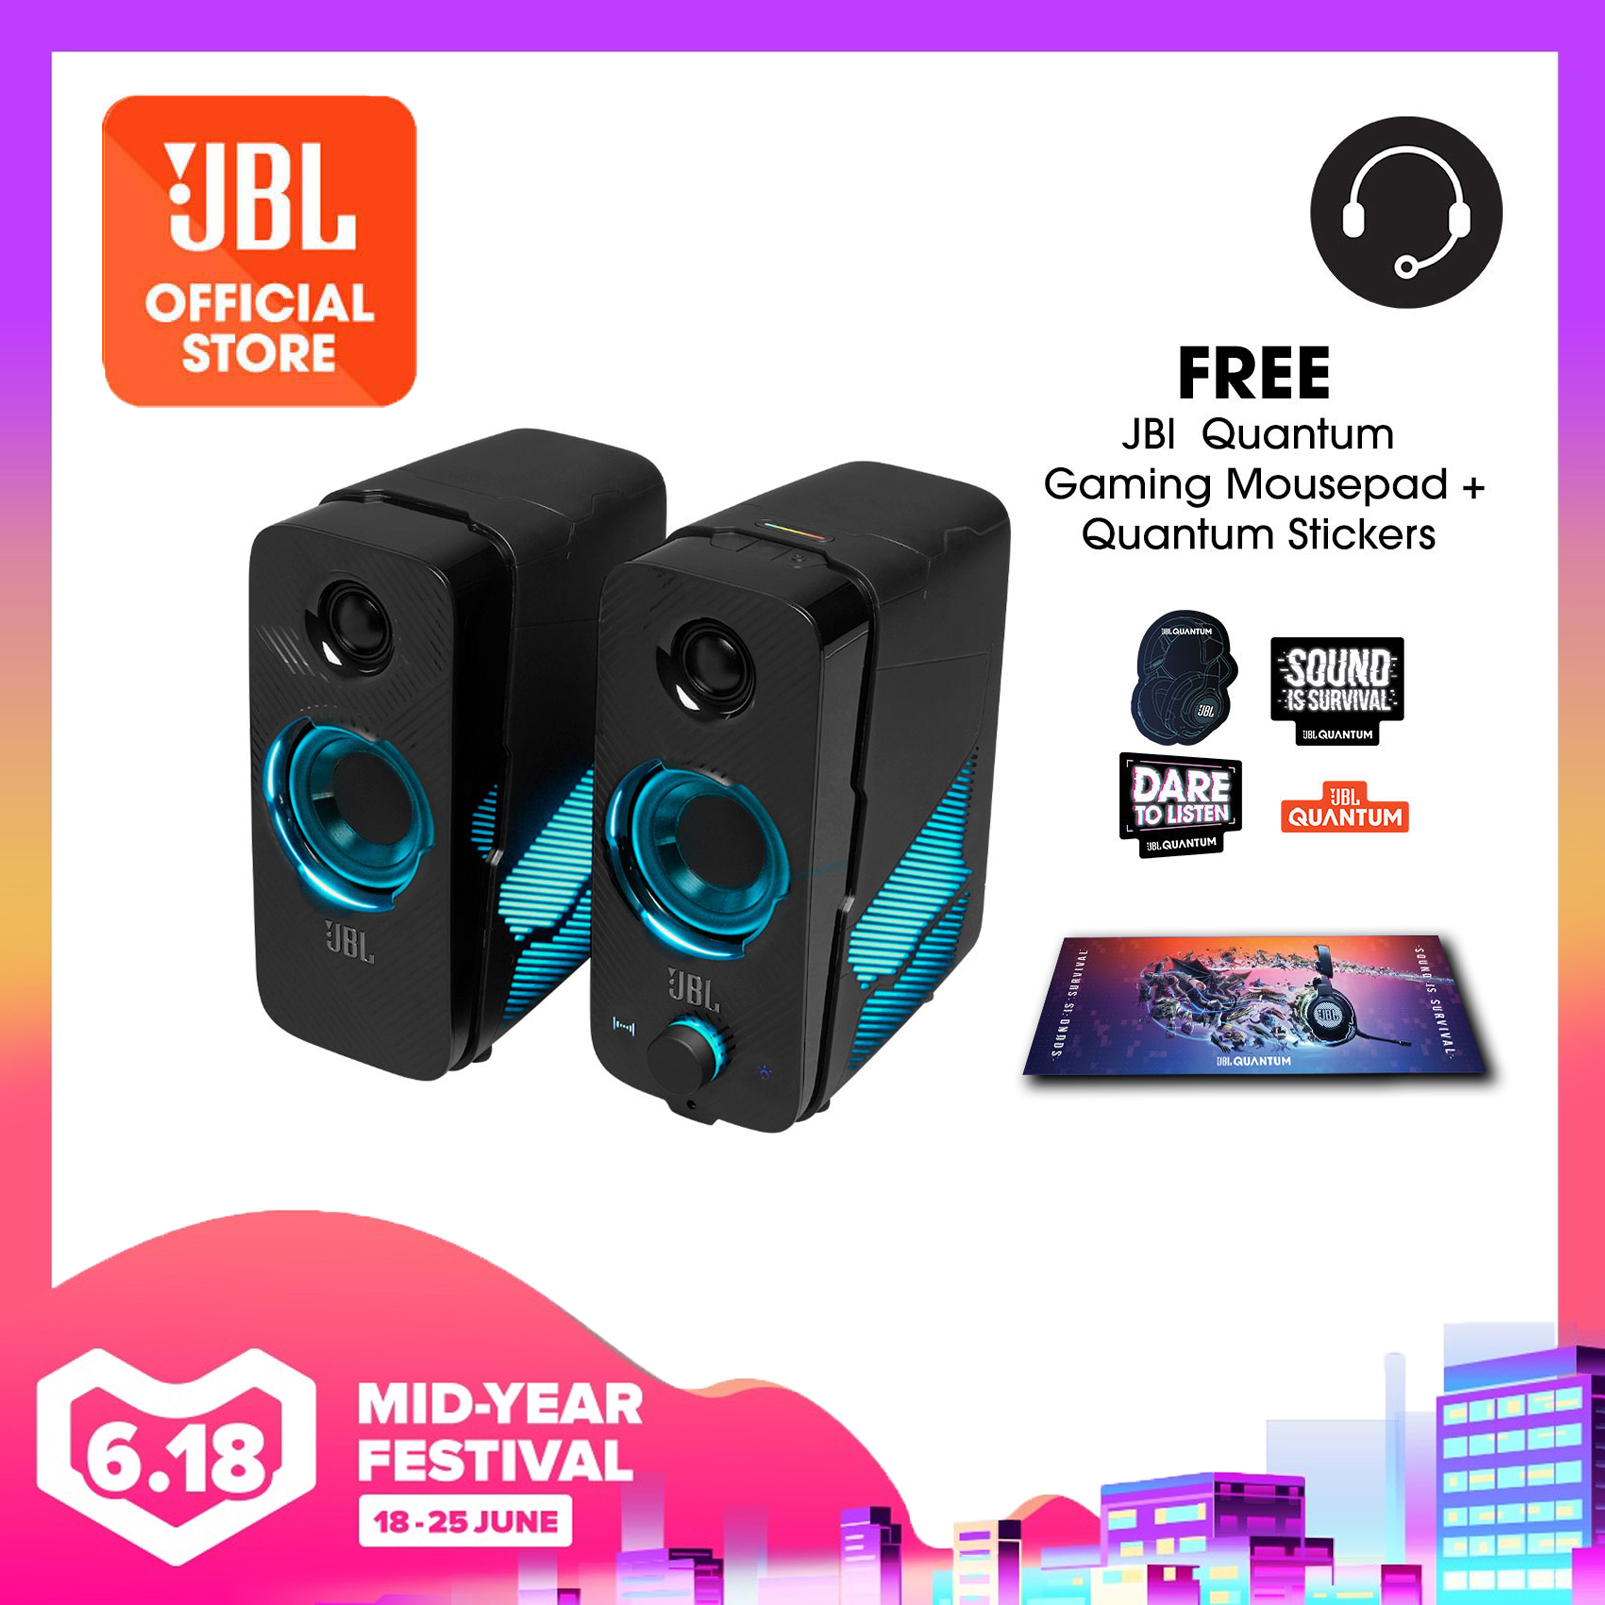 JBL Quantum Duo PC Gaming Speakers + Gaming Mouse Pad + Stickers | Why Not Deals